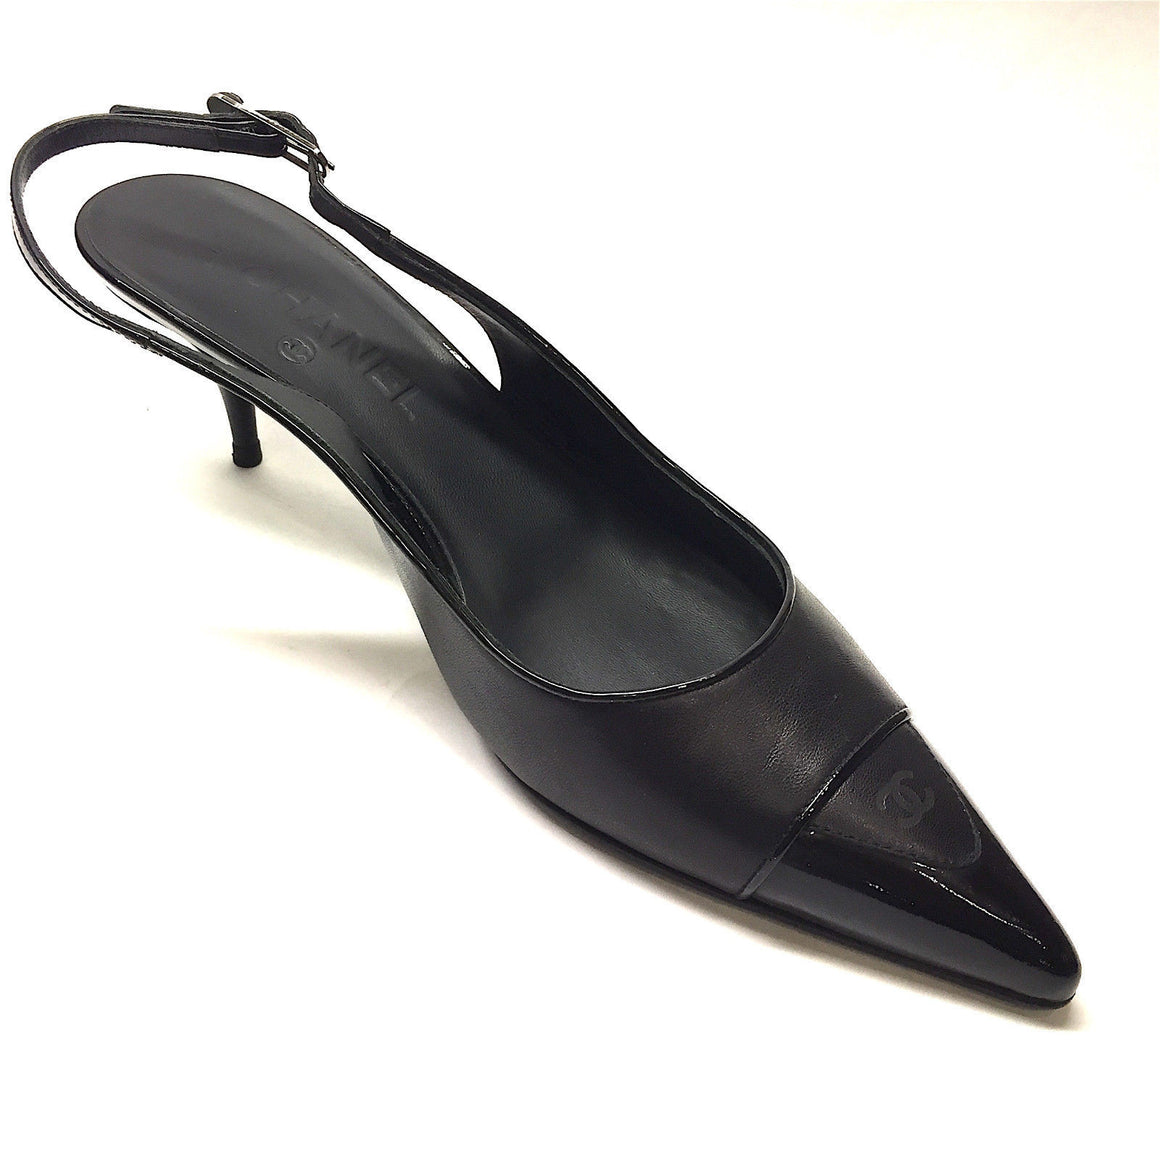 bisbiz.com CHANEL  Black Leather Patent Logo Pointed Toe  Low-Heel Slingback Pumps Shoes  Size: 39.5/9.5 - Bis Luxury Resale